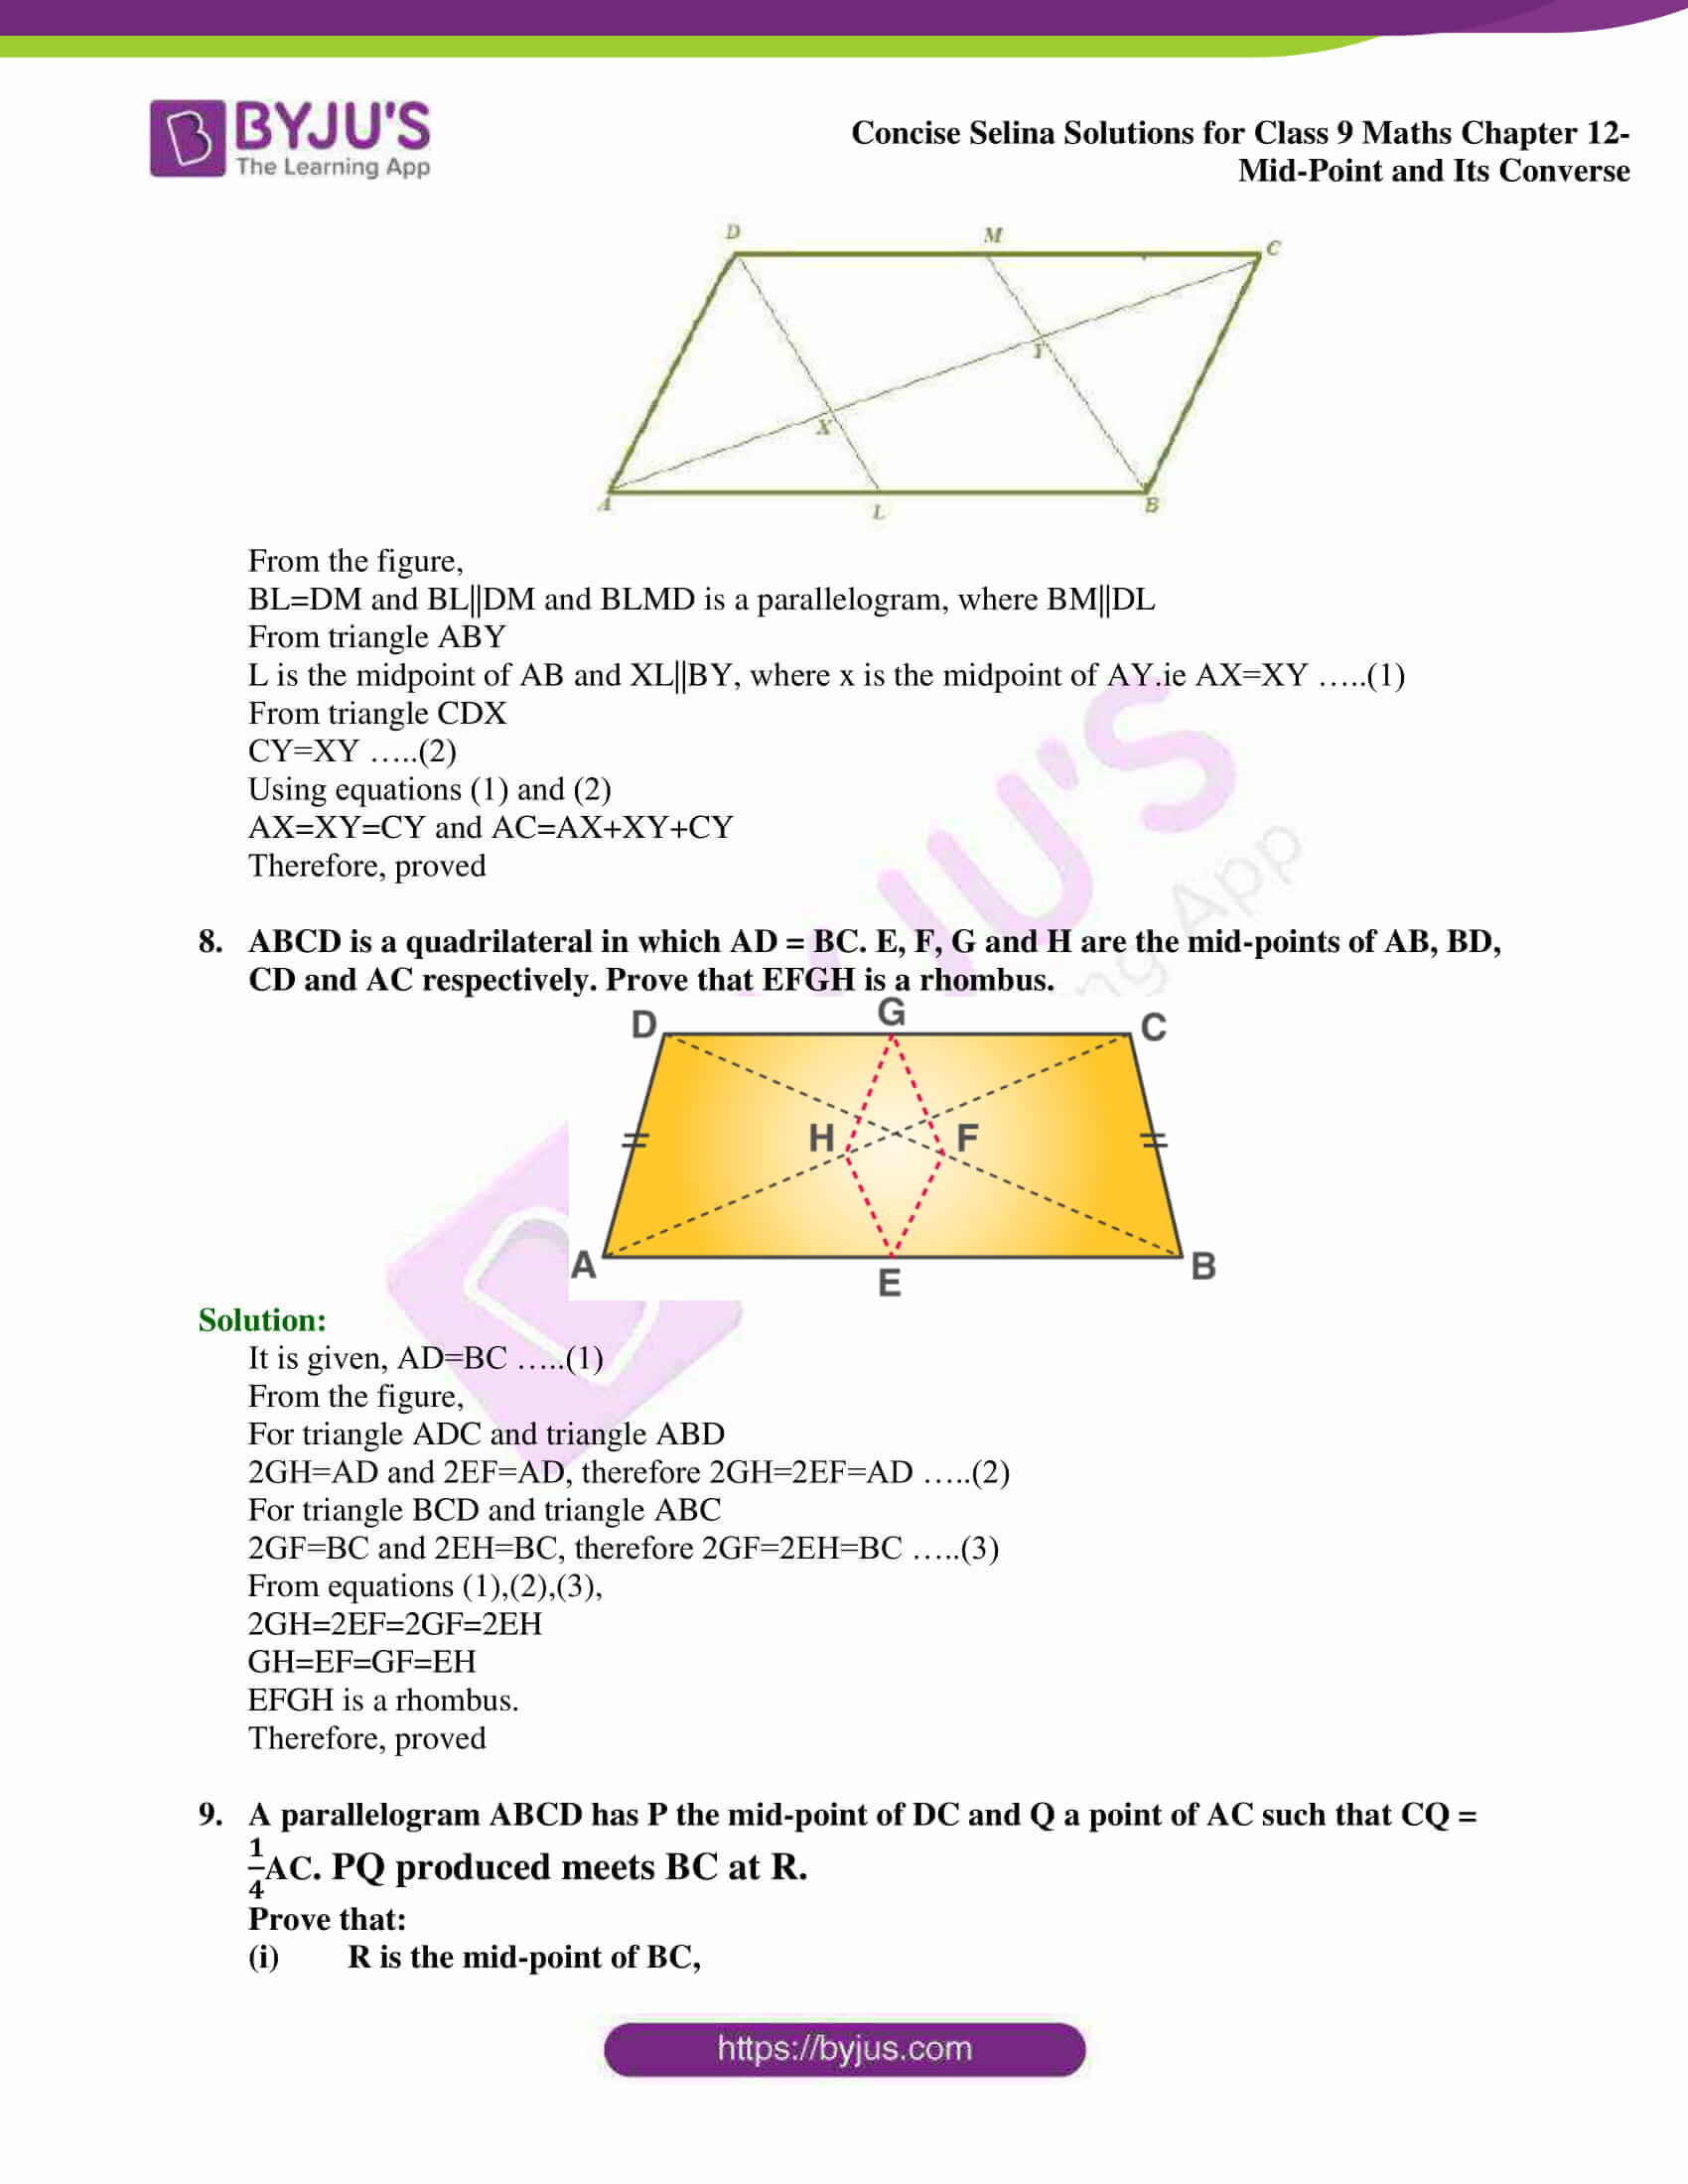 selina Solutions for Class 9 Maths Chapter 12 05